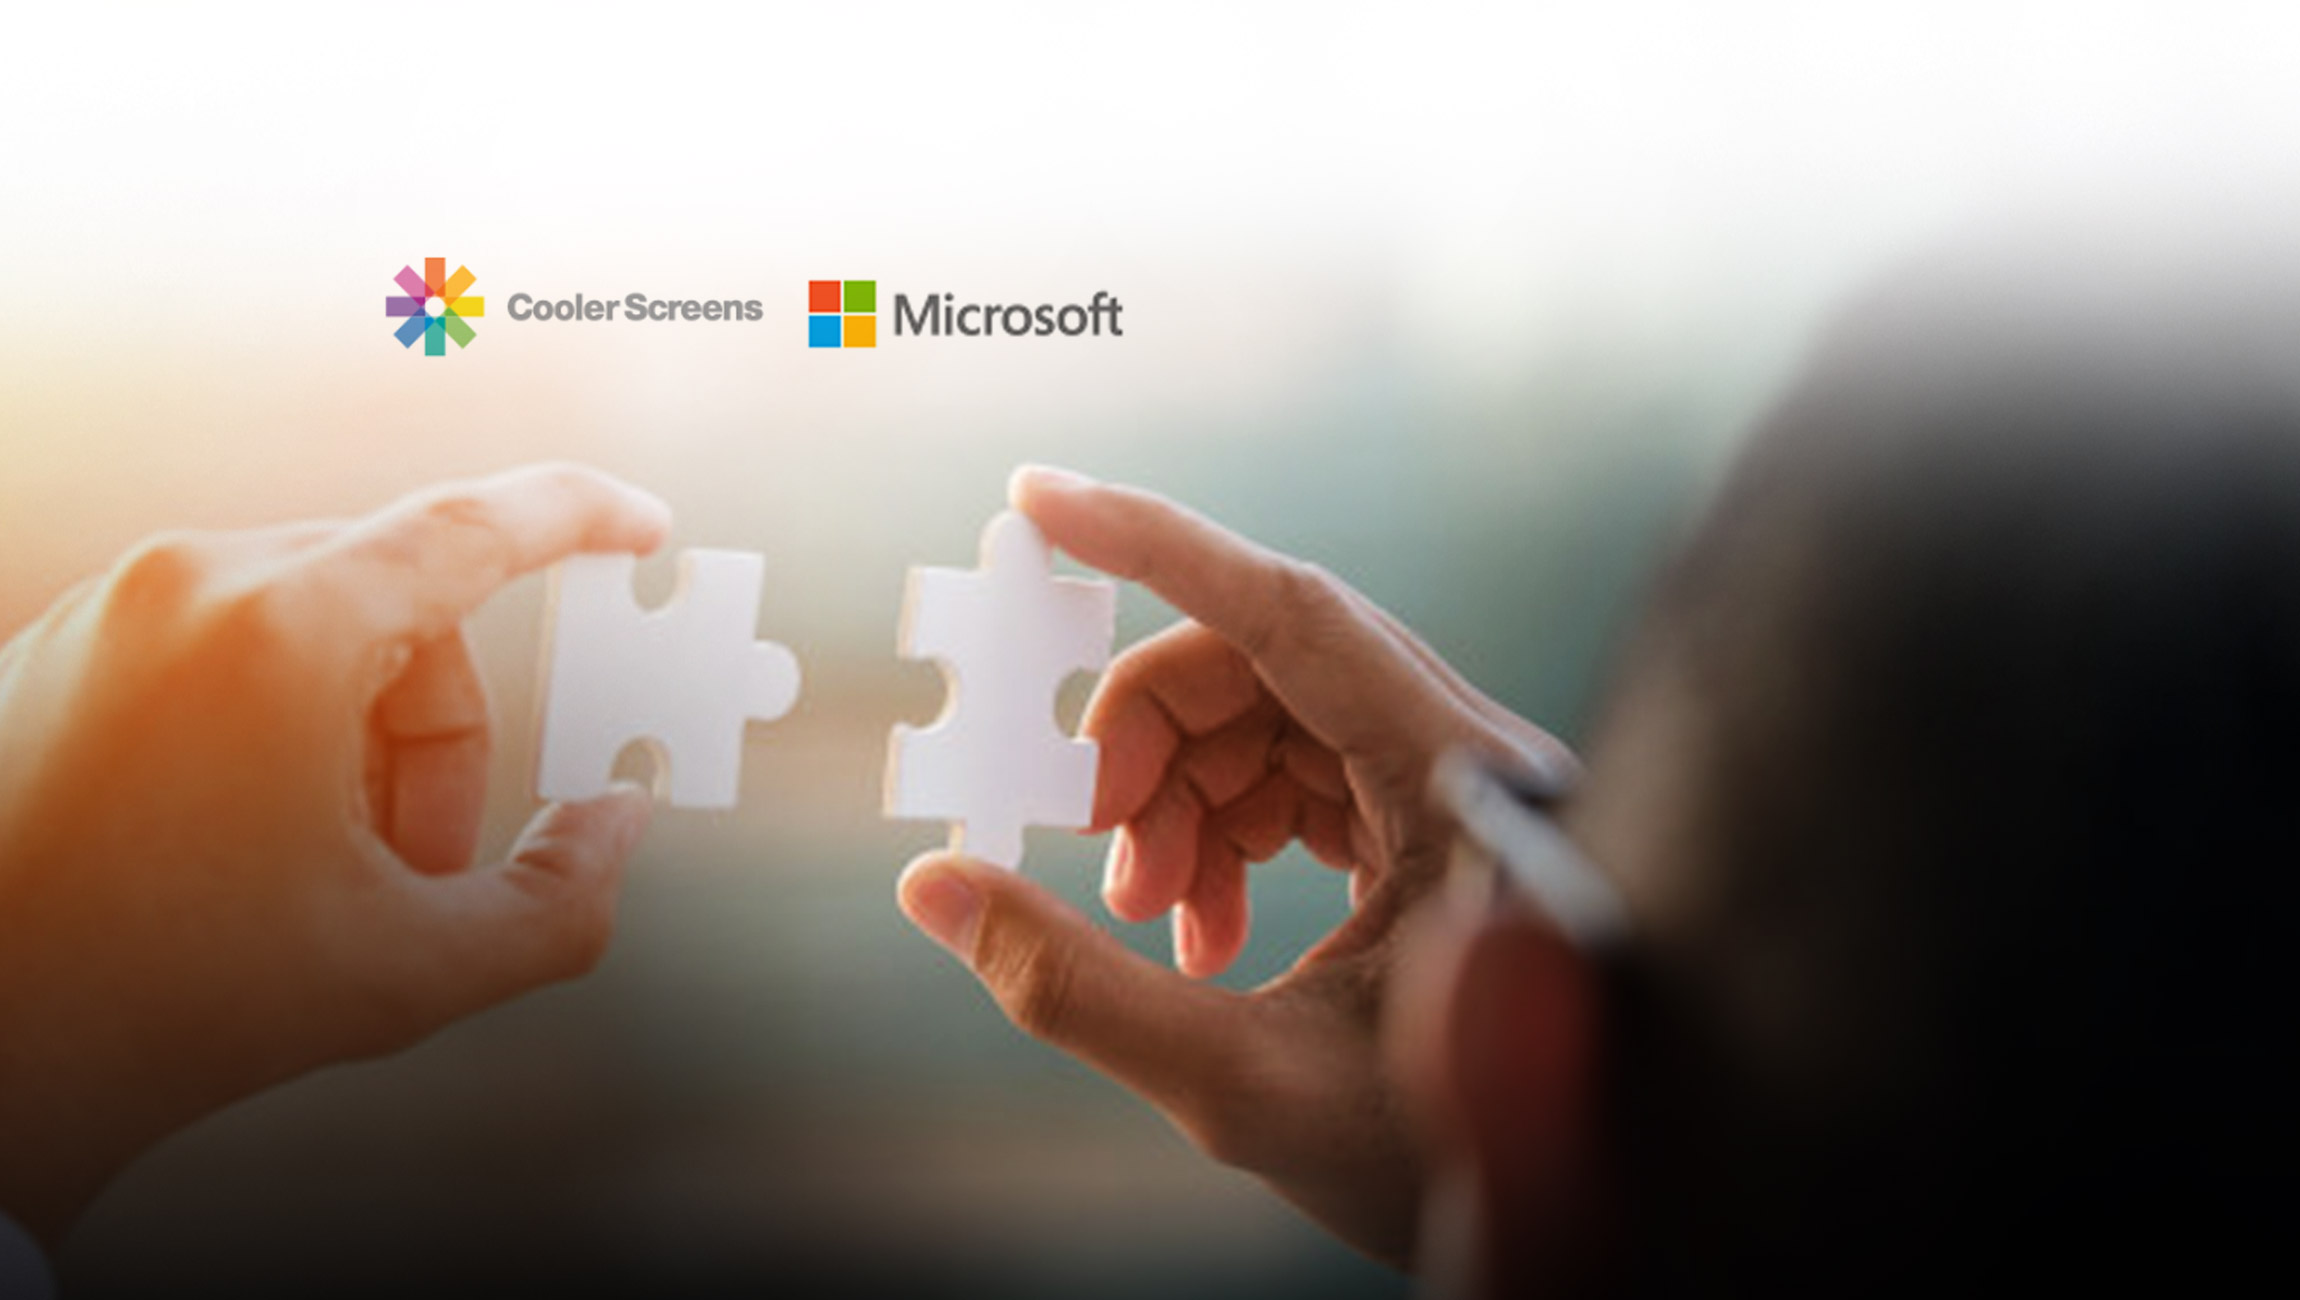 Cooler Screens collaborates with Microsoft to deliver immersive digital experiences in retail